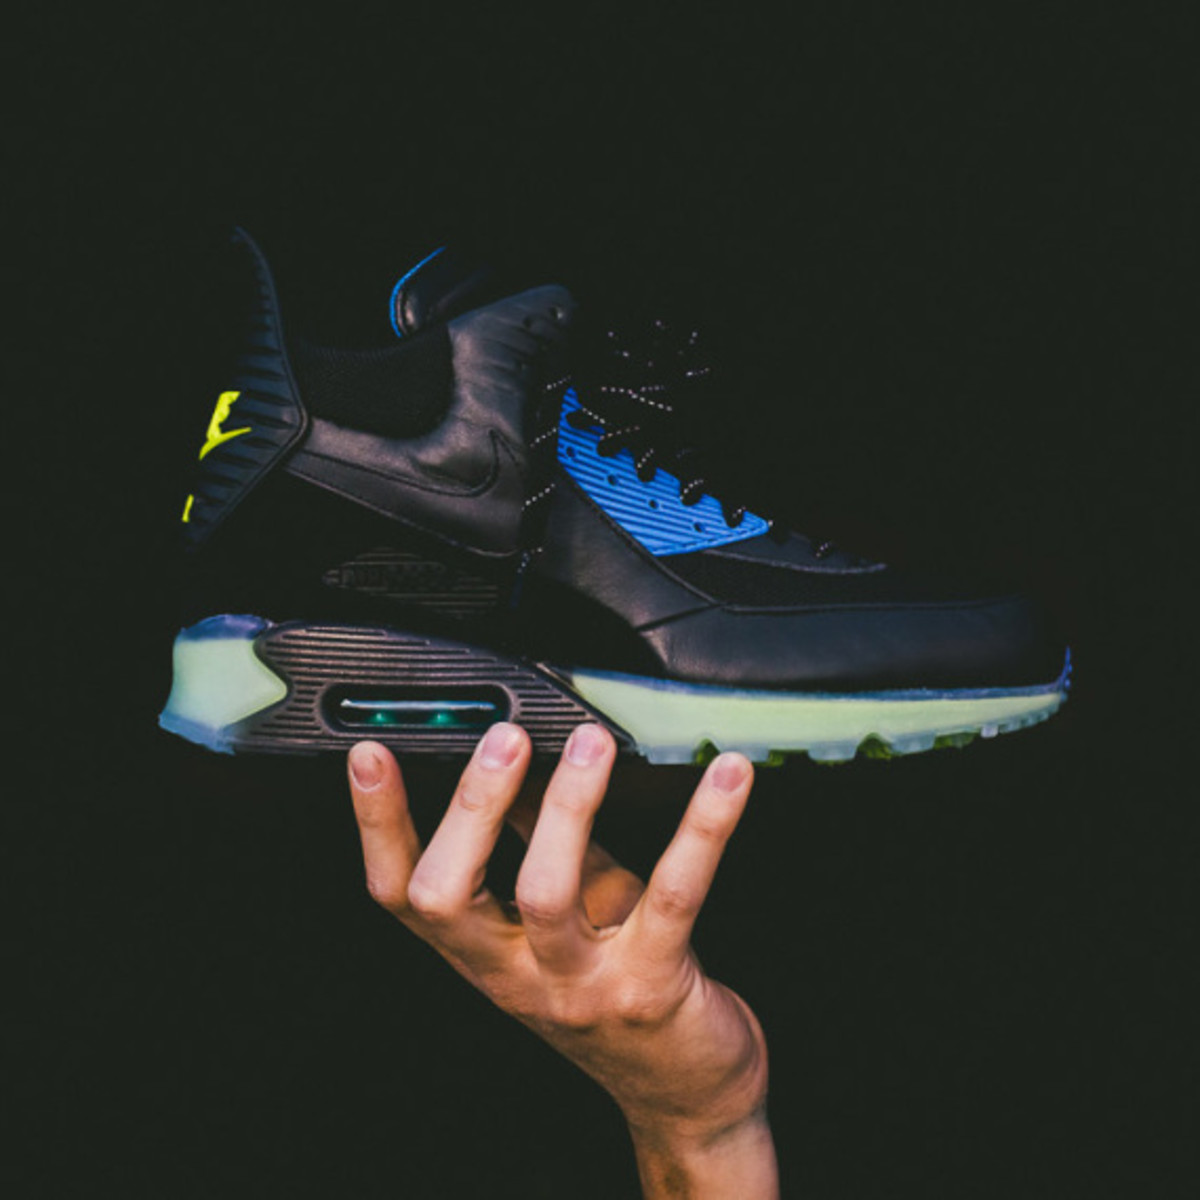 Nike Air Max 90 ICE Sneakerboot - Black/Photo Blue | Available Now - 0